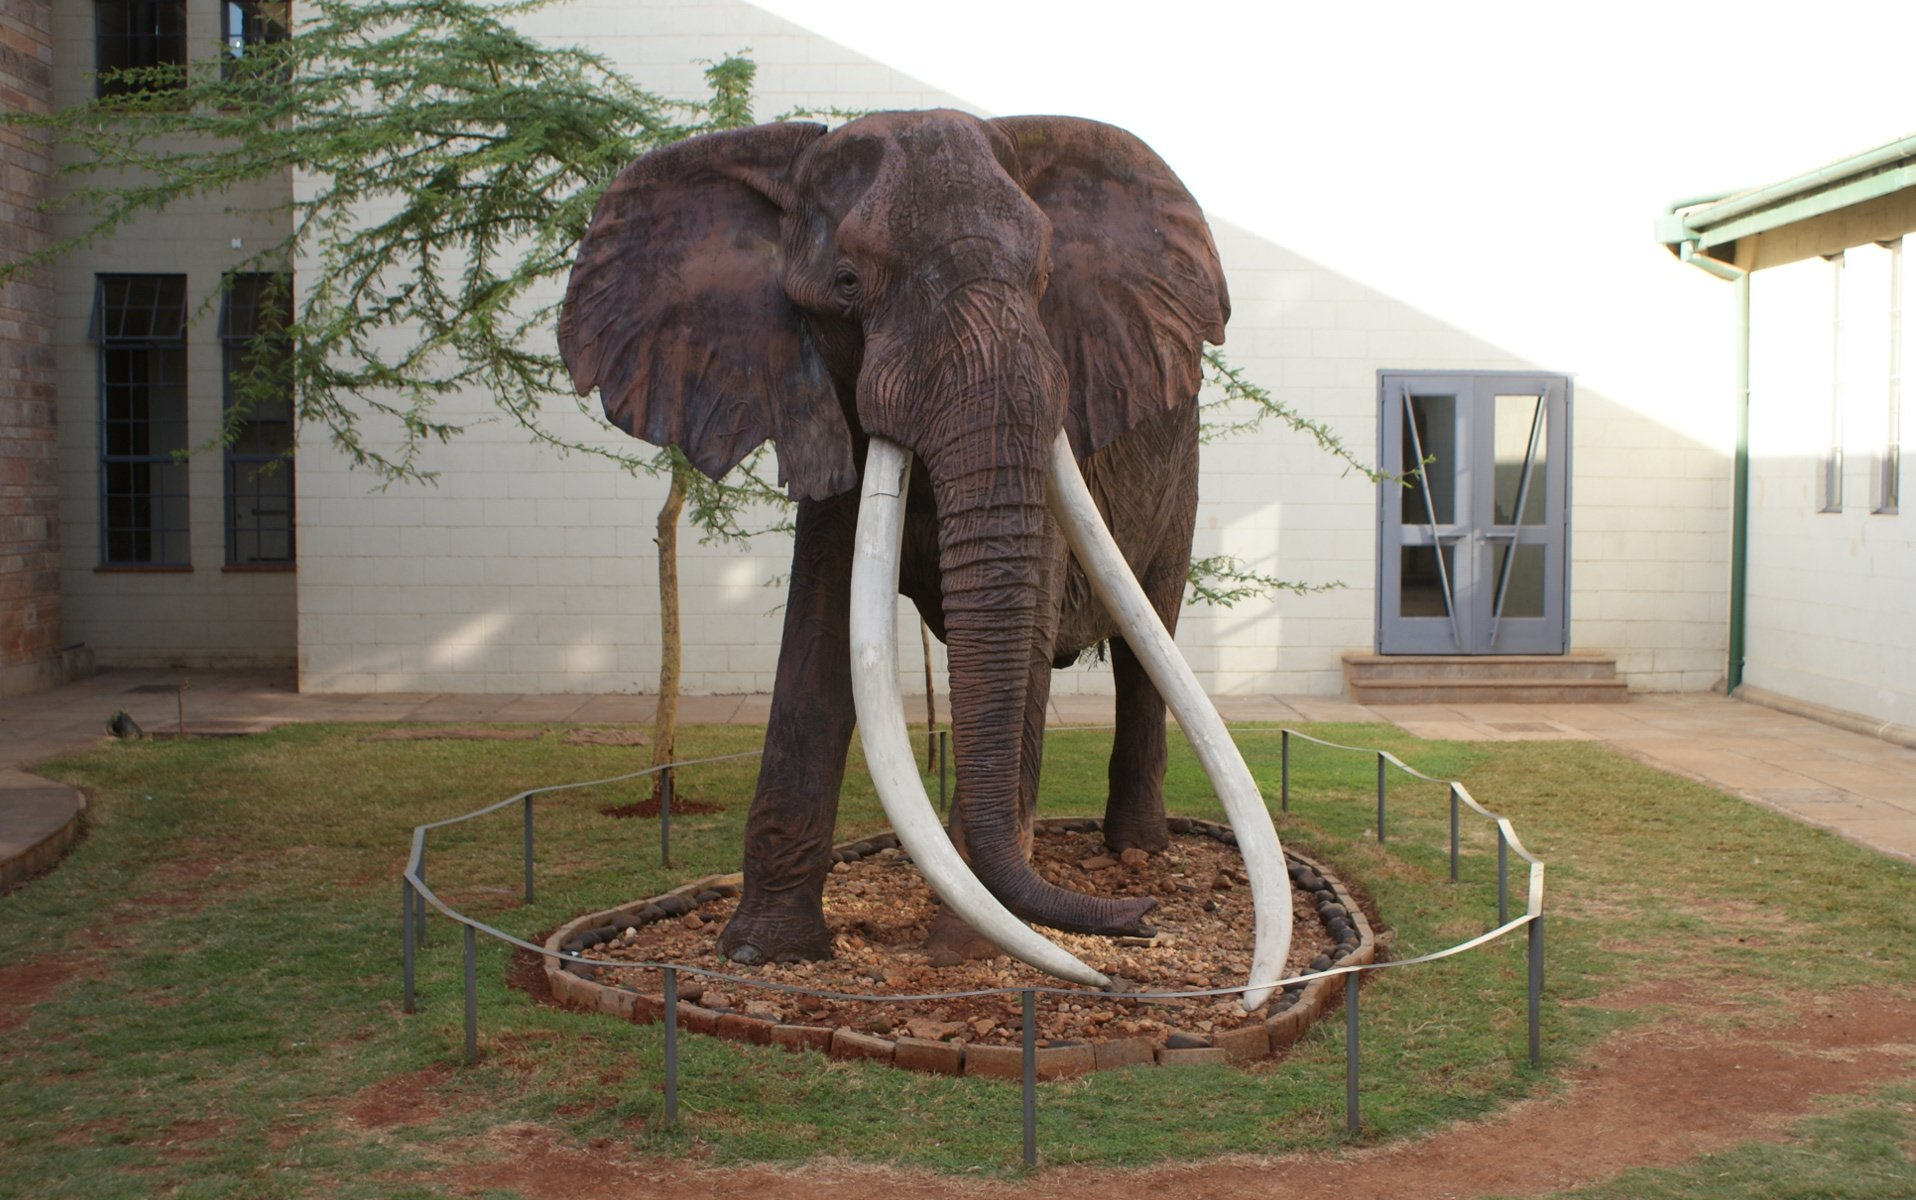 At the Nairobi National Museum, the mummified statue of Ahmed still stands tall nearly a century after his death. Ahmed lived and died at the Marsabit National Park.